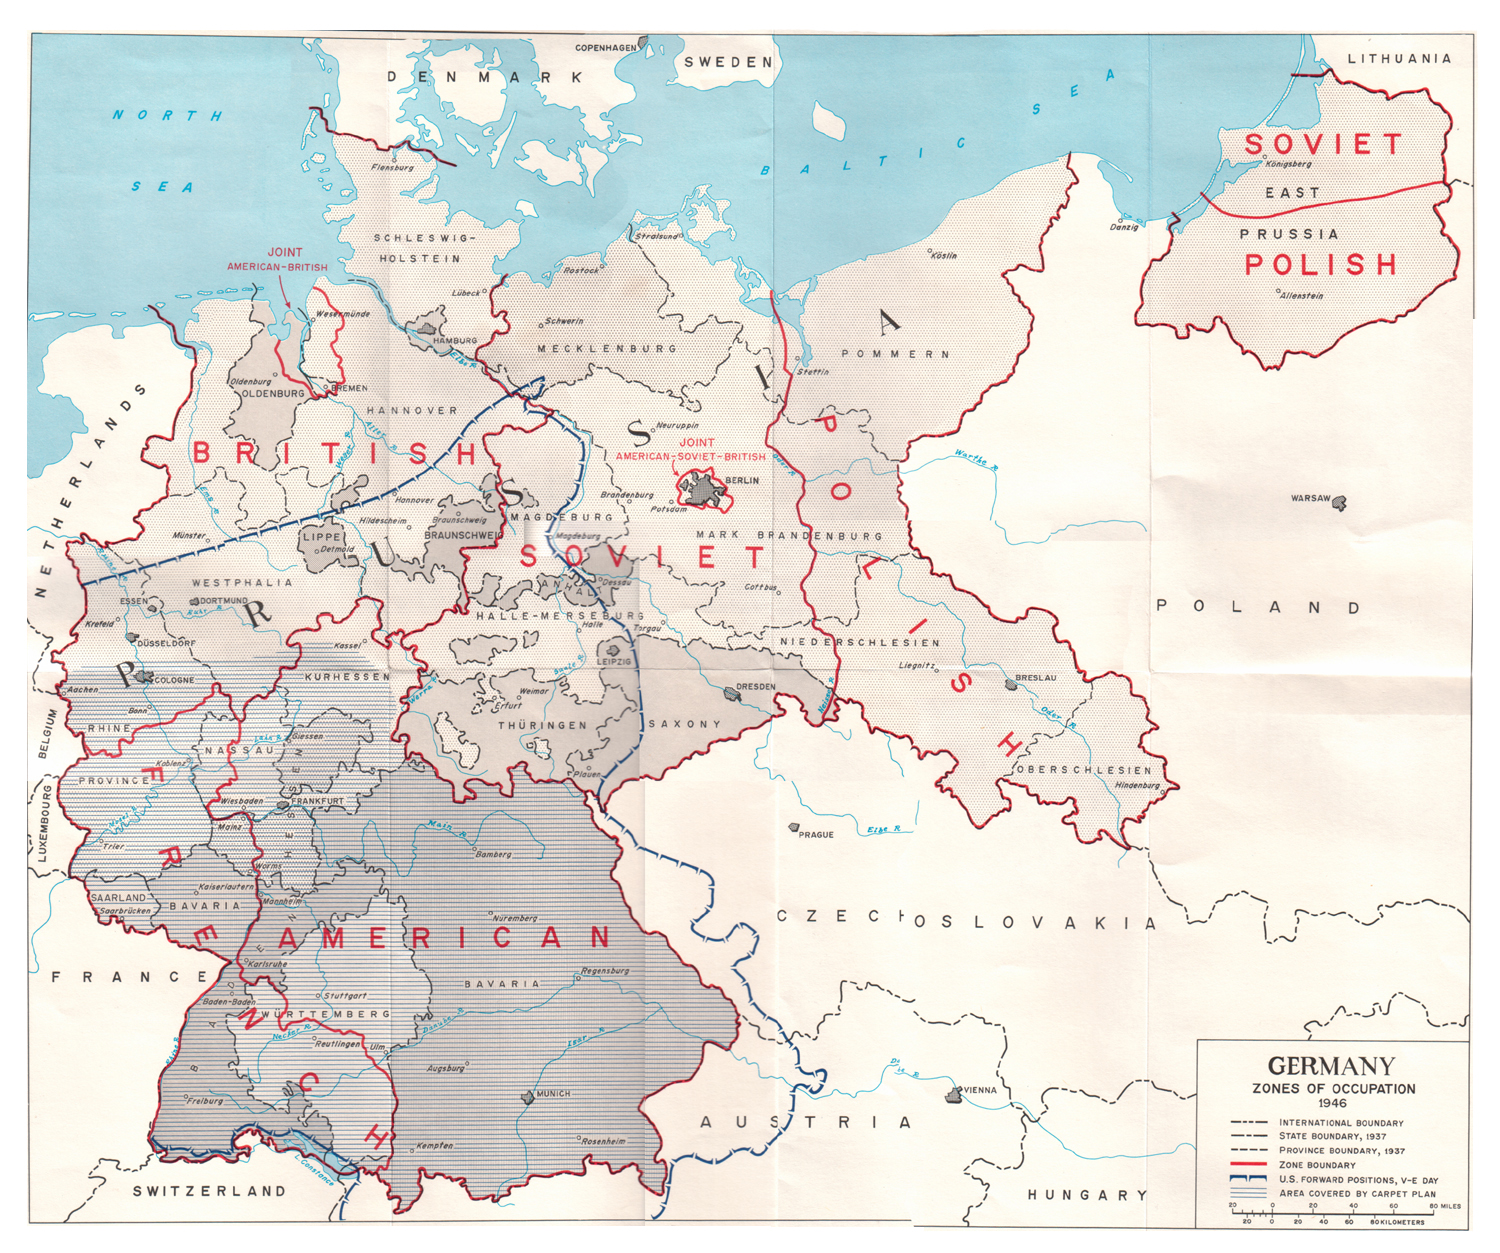 Zones Of Occupation - Germany map zones